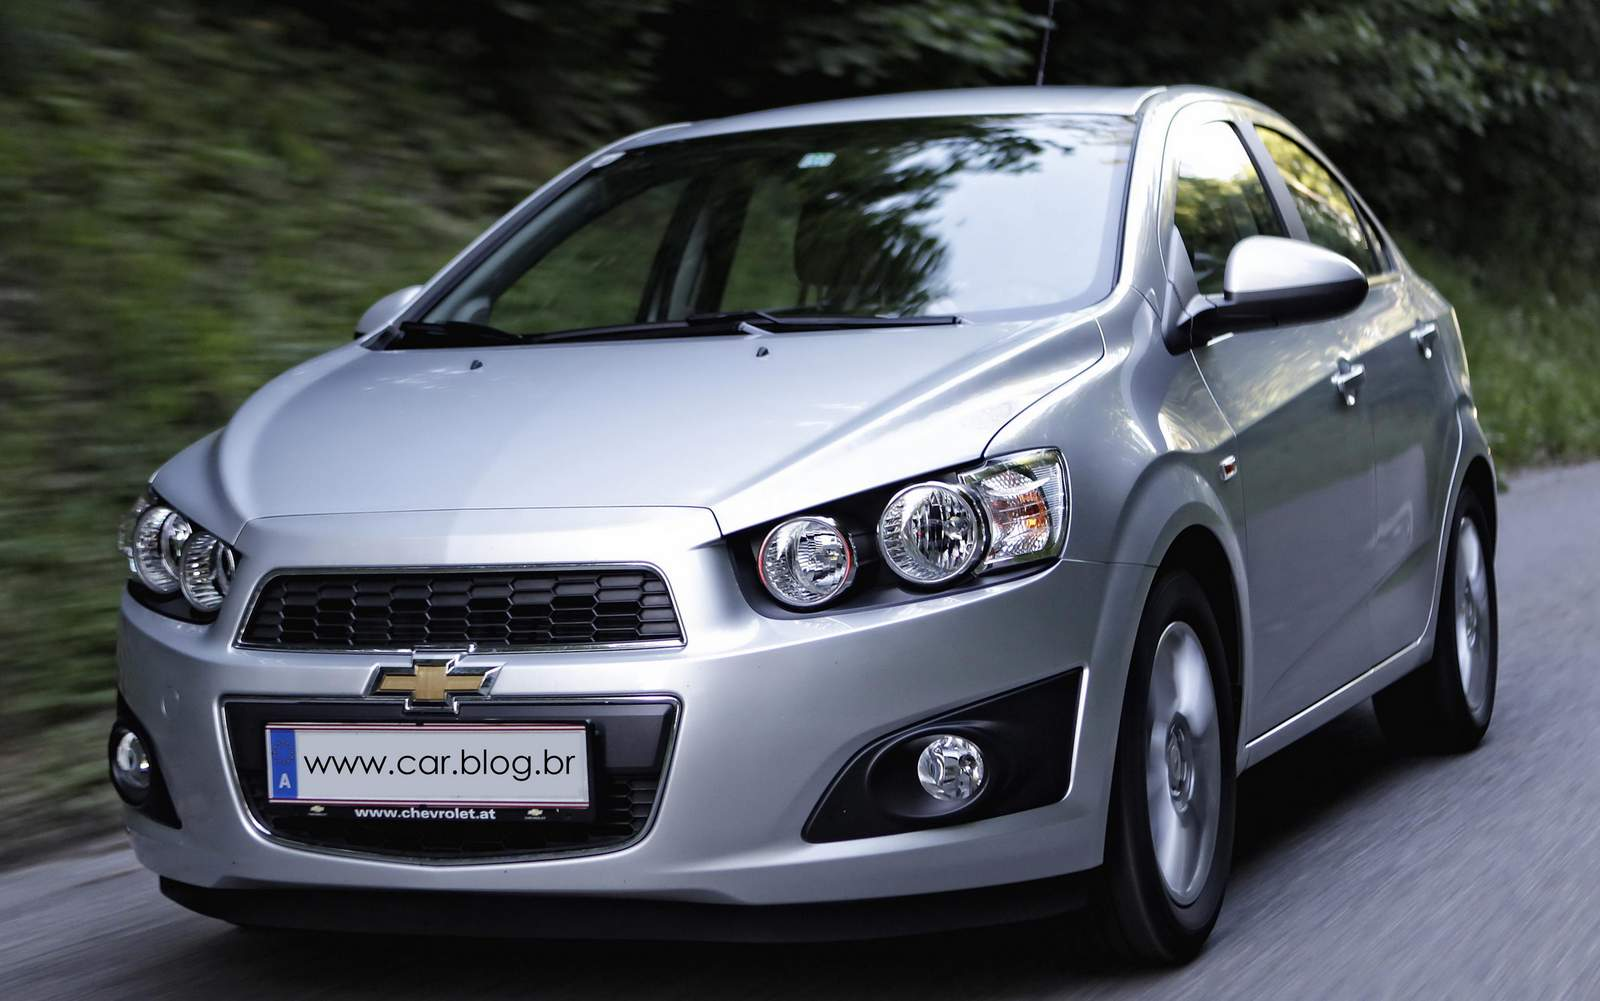 chevrolet sonic sedan 2013 images galleries with a bite. Black Bedroom Furniture Sets. Home Design Ideas